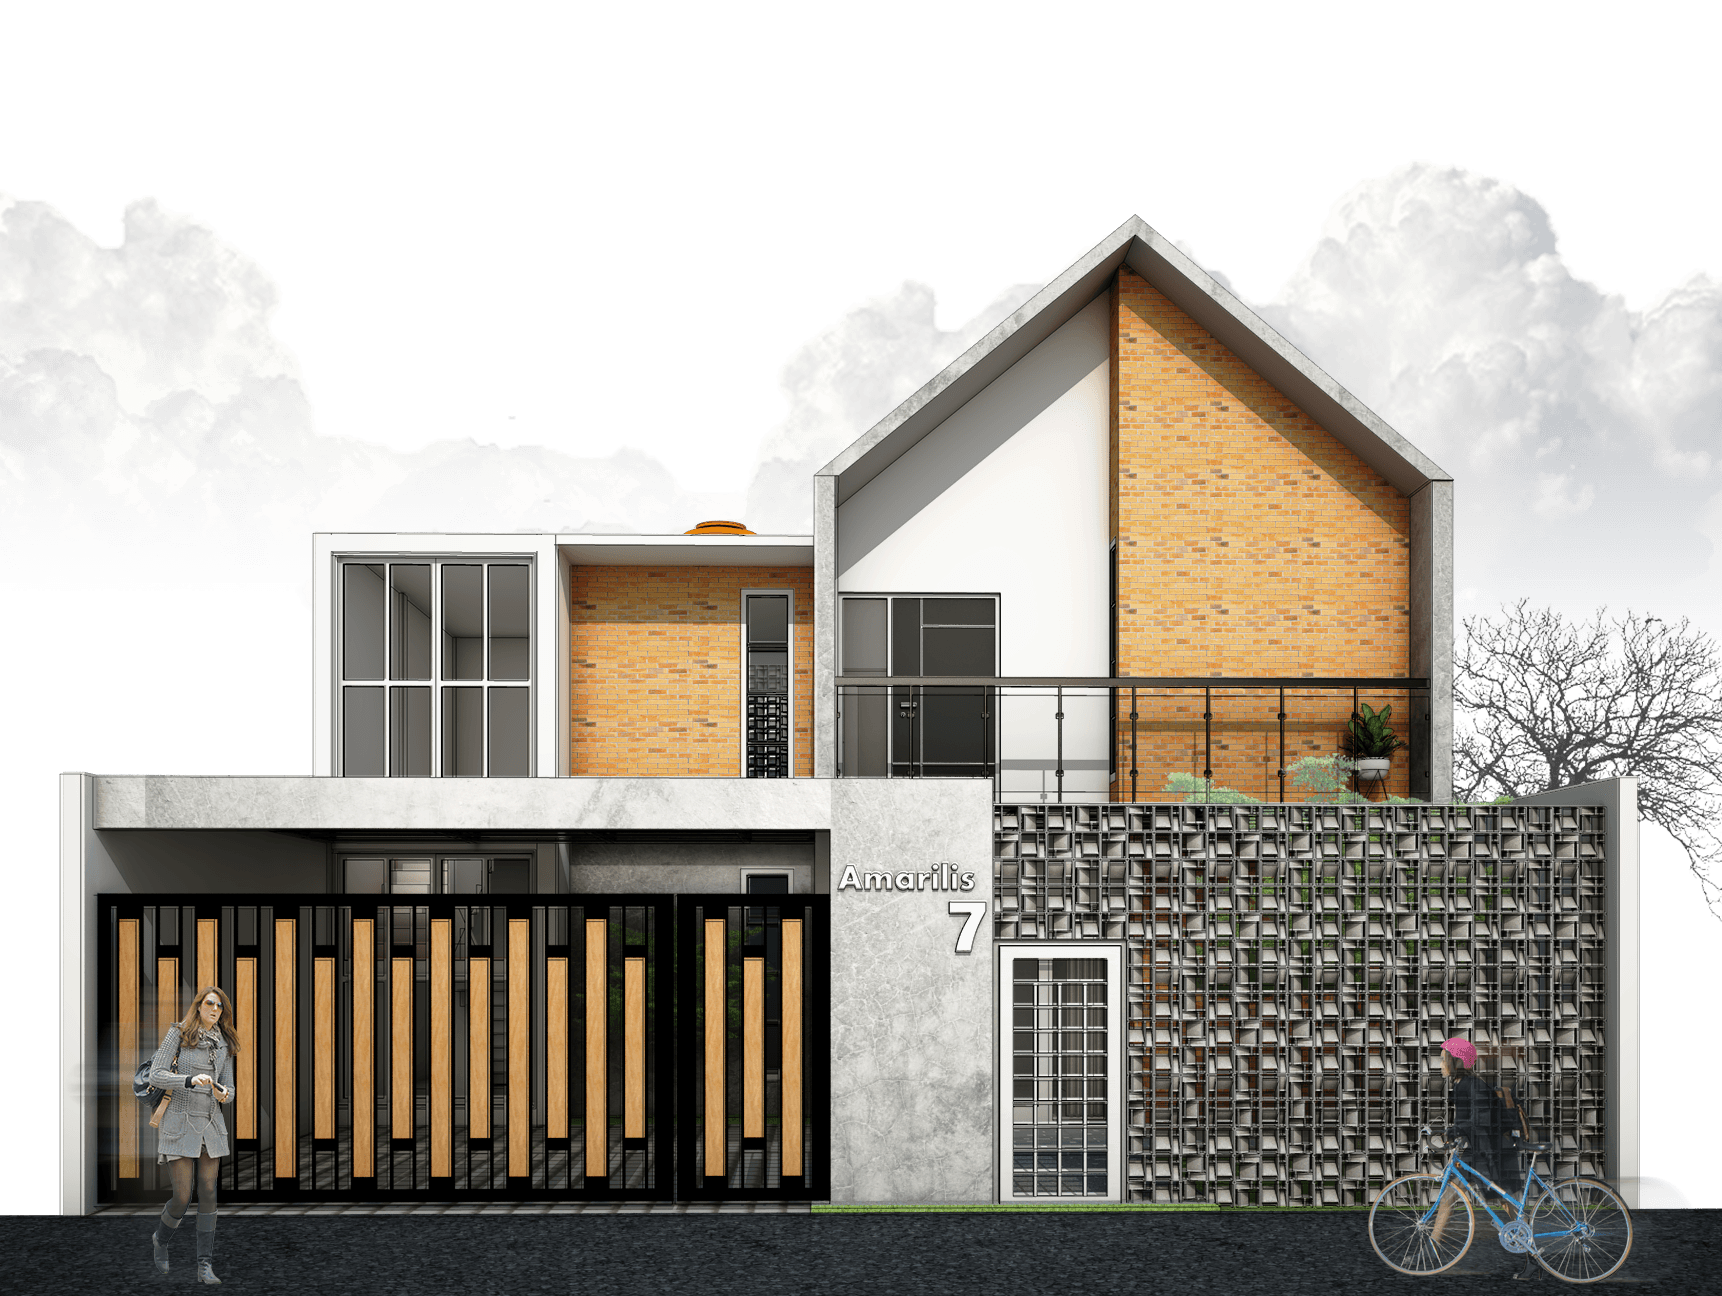 ASTABUMI ARCHITECT & INTERIOR DESIGN di Klaten